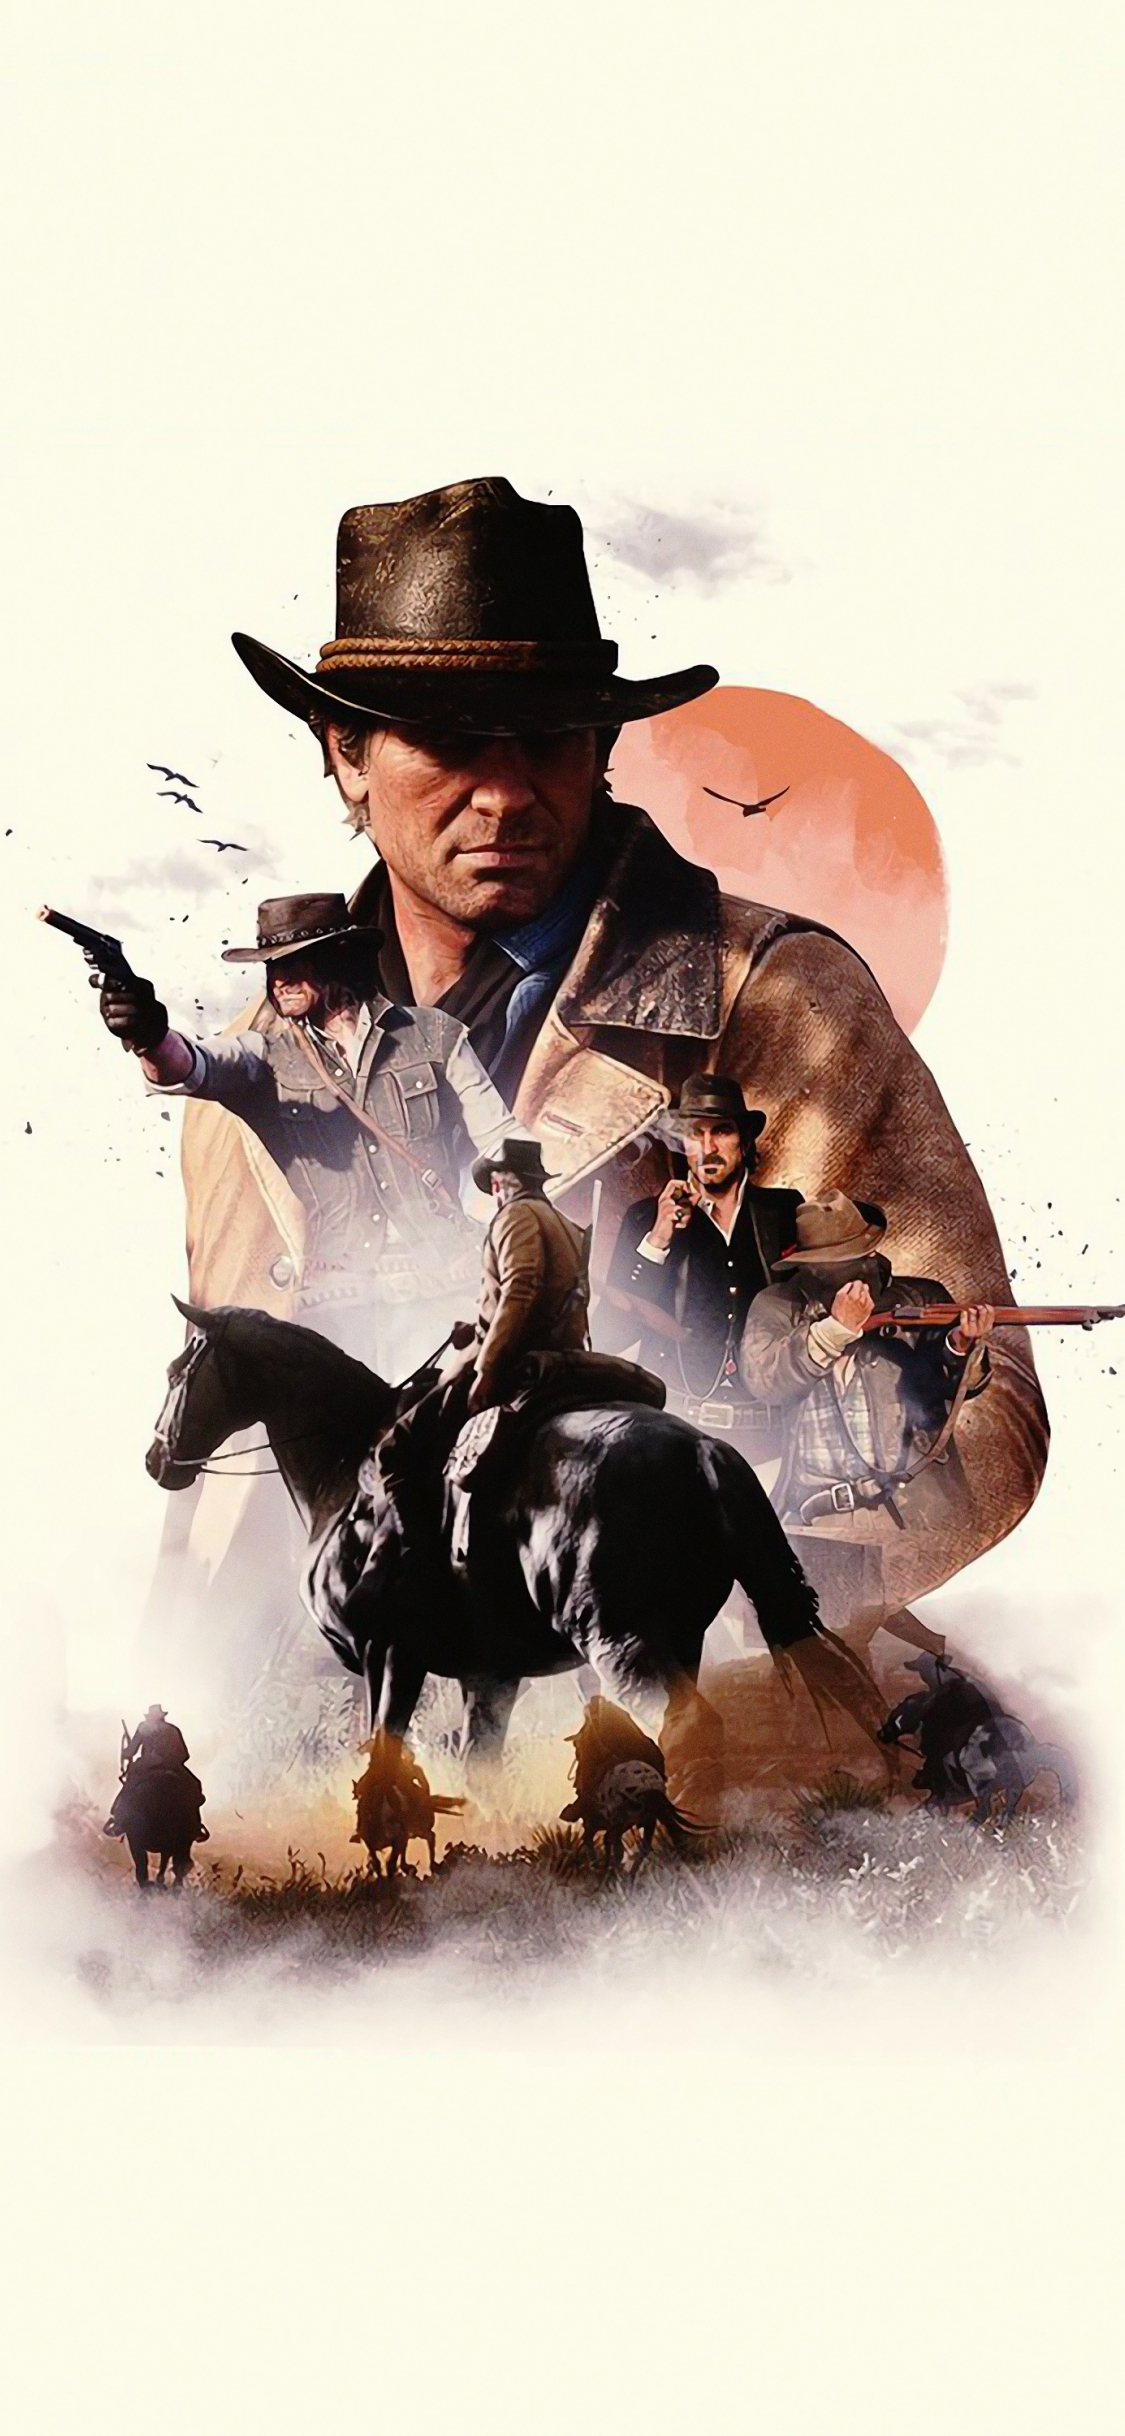 Download 1125x2436 Wallpaper Video Game Poster Red Dead